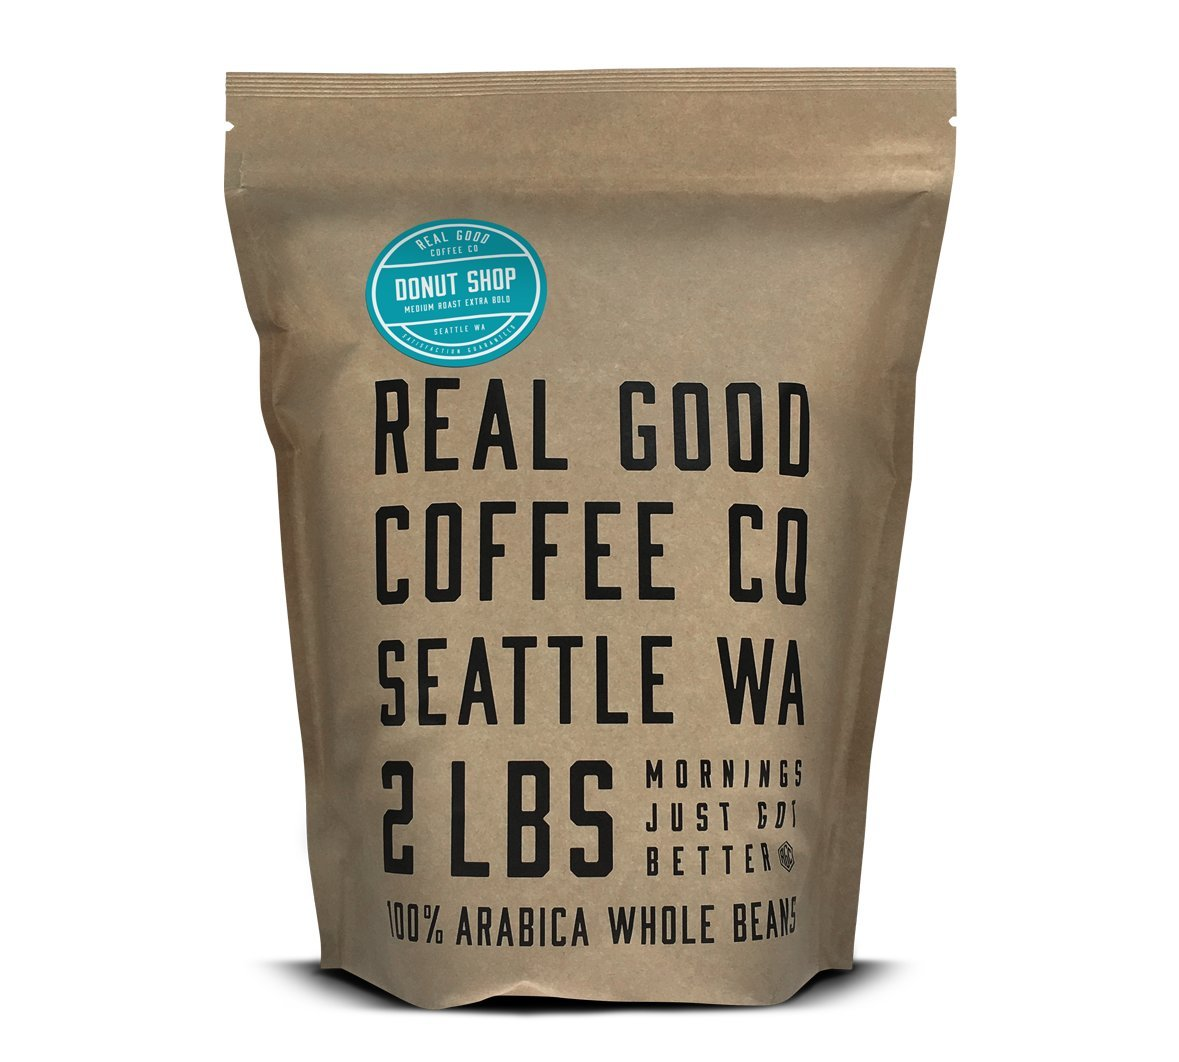 Real Good Coffee Whole Bean Coffee, Donut Shop Medium Roast Coffee Beans, 2 Pound Bag by Real Good Coffee Company